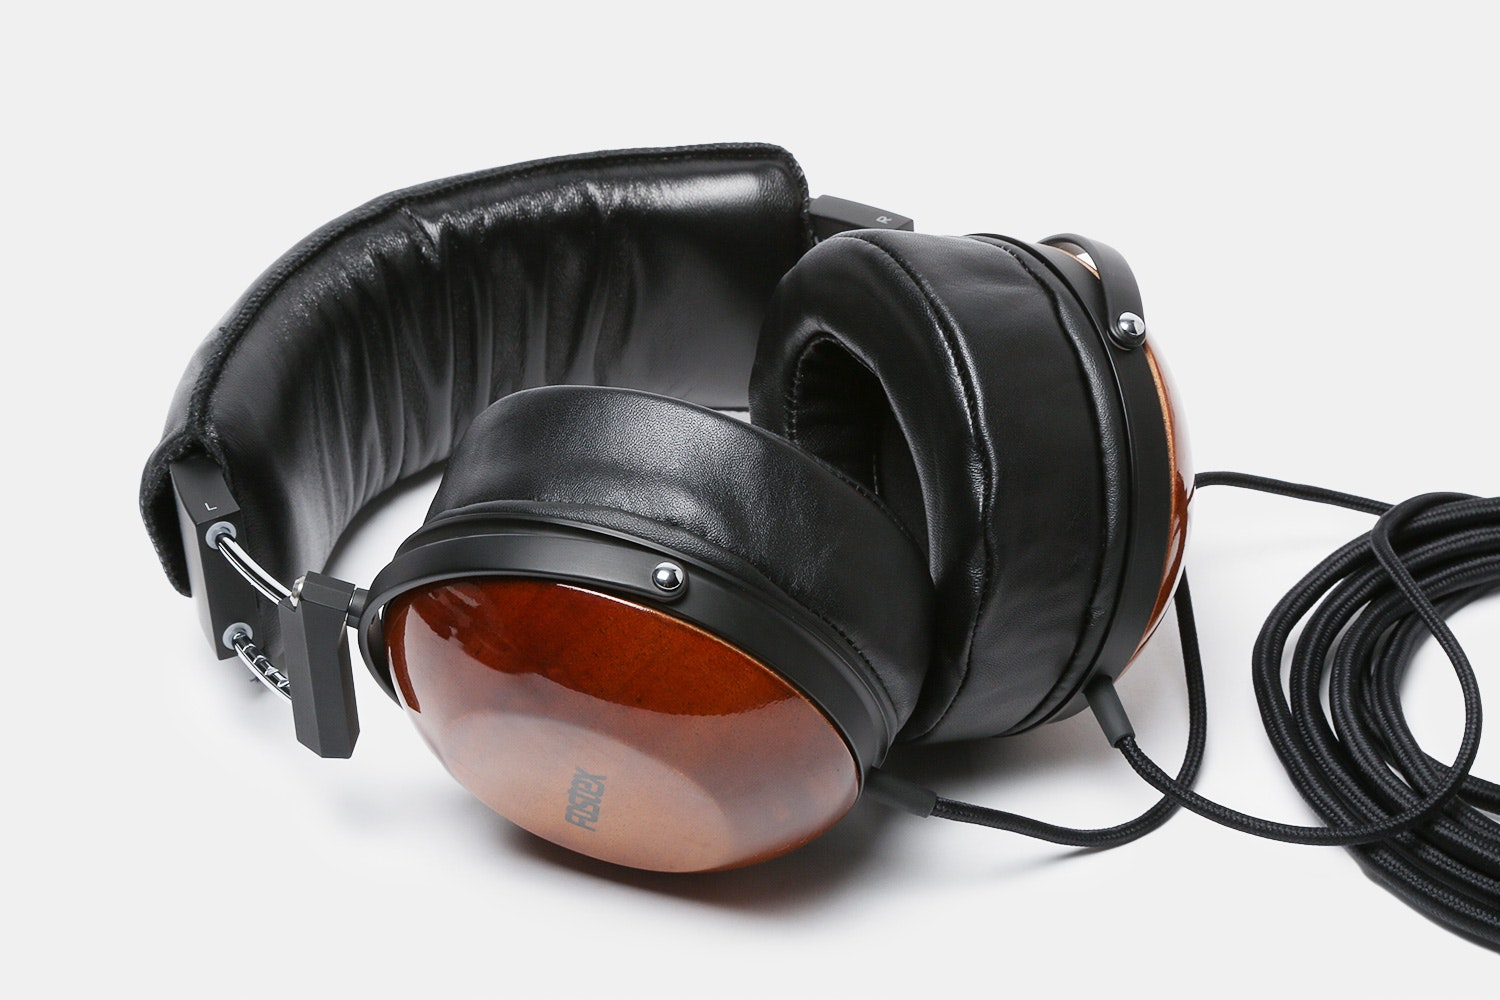 361A5876_20170629115824?w=600&h=399 zmf ear pads for fostex, audeze & more community discussions Headphone with Mic Wiring Diagram at reclaimingppi.co